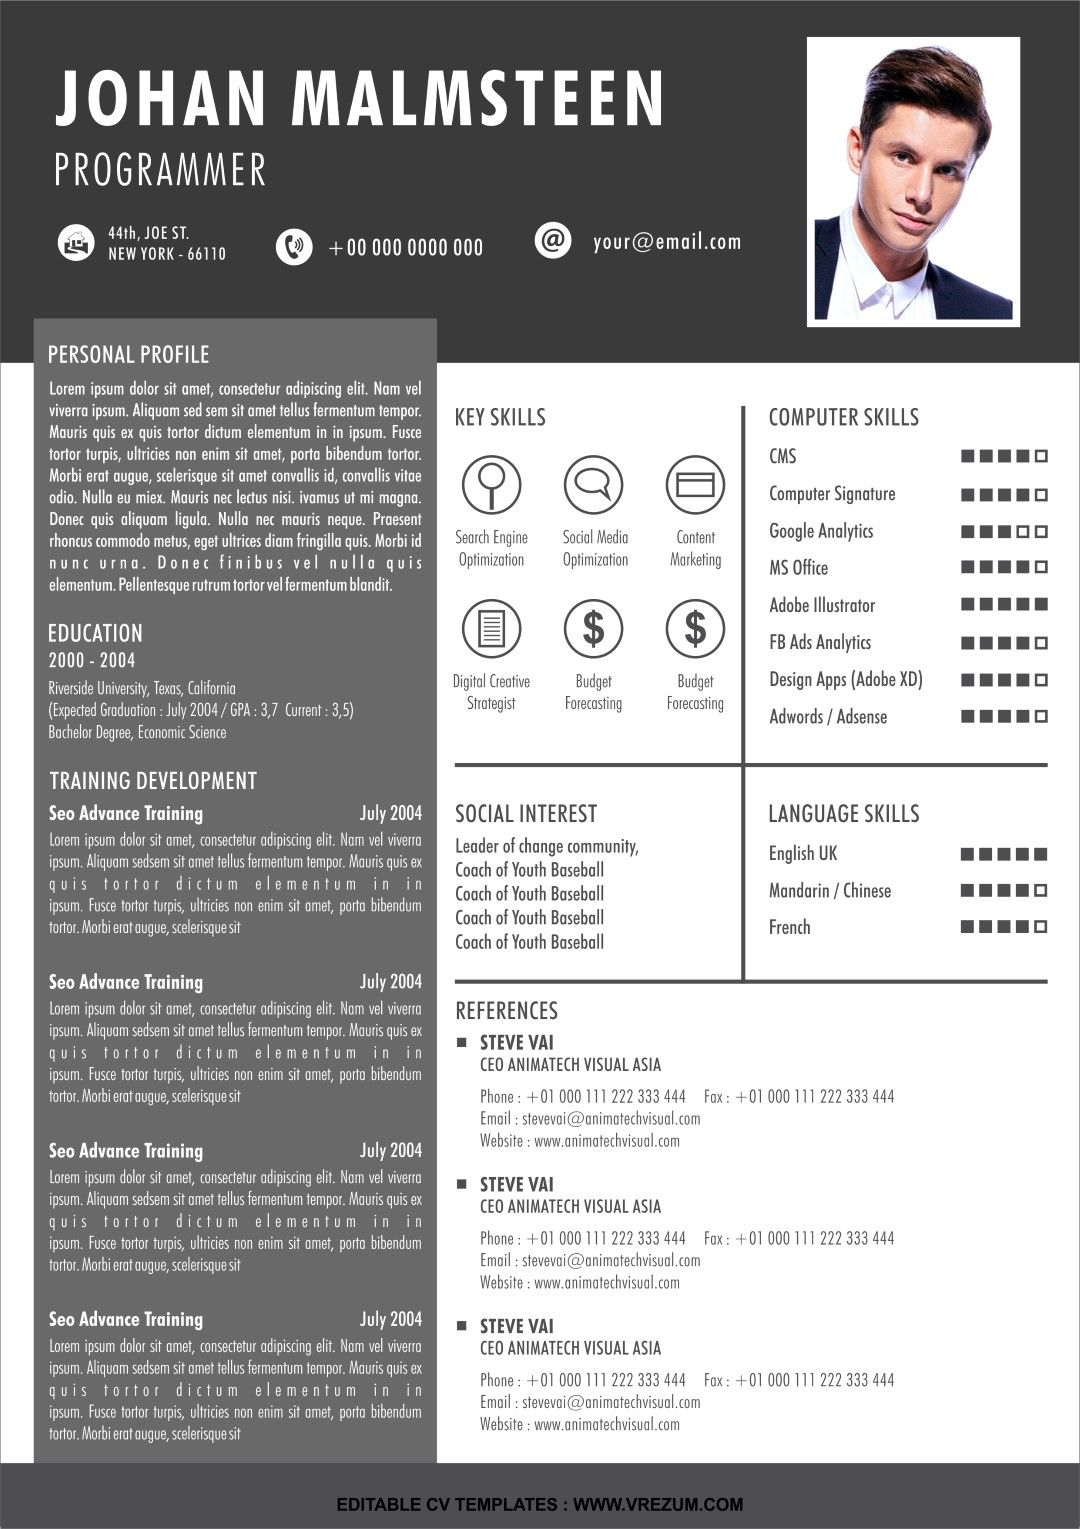 (EDITABLE) FREE CV Templates For Programmer in 2020 (With